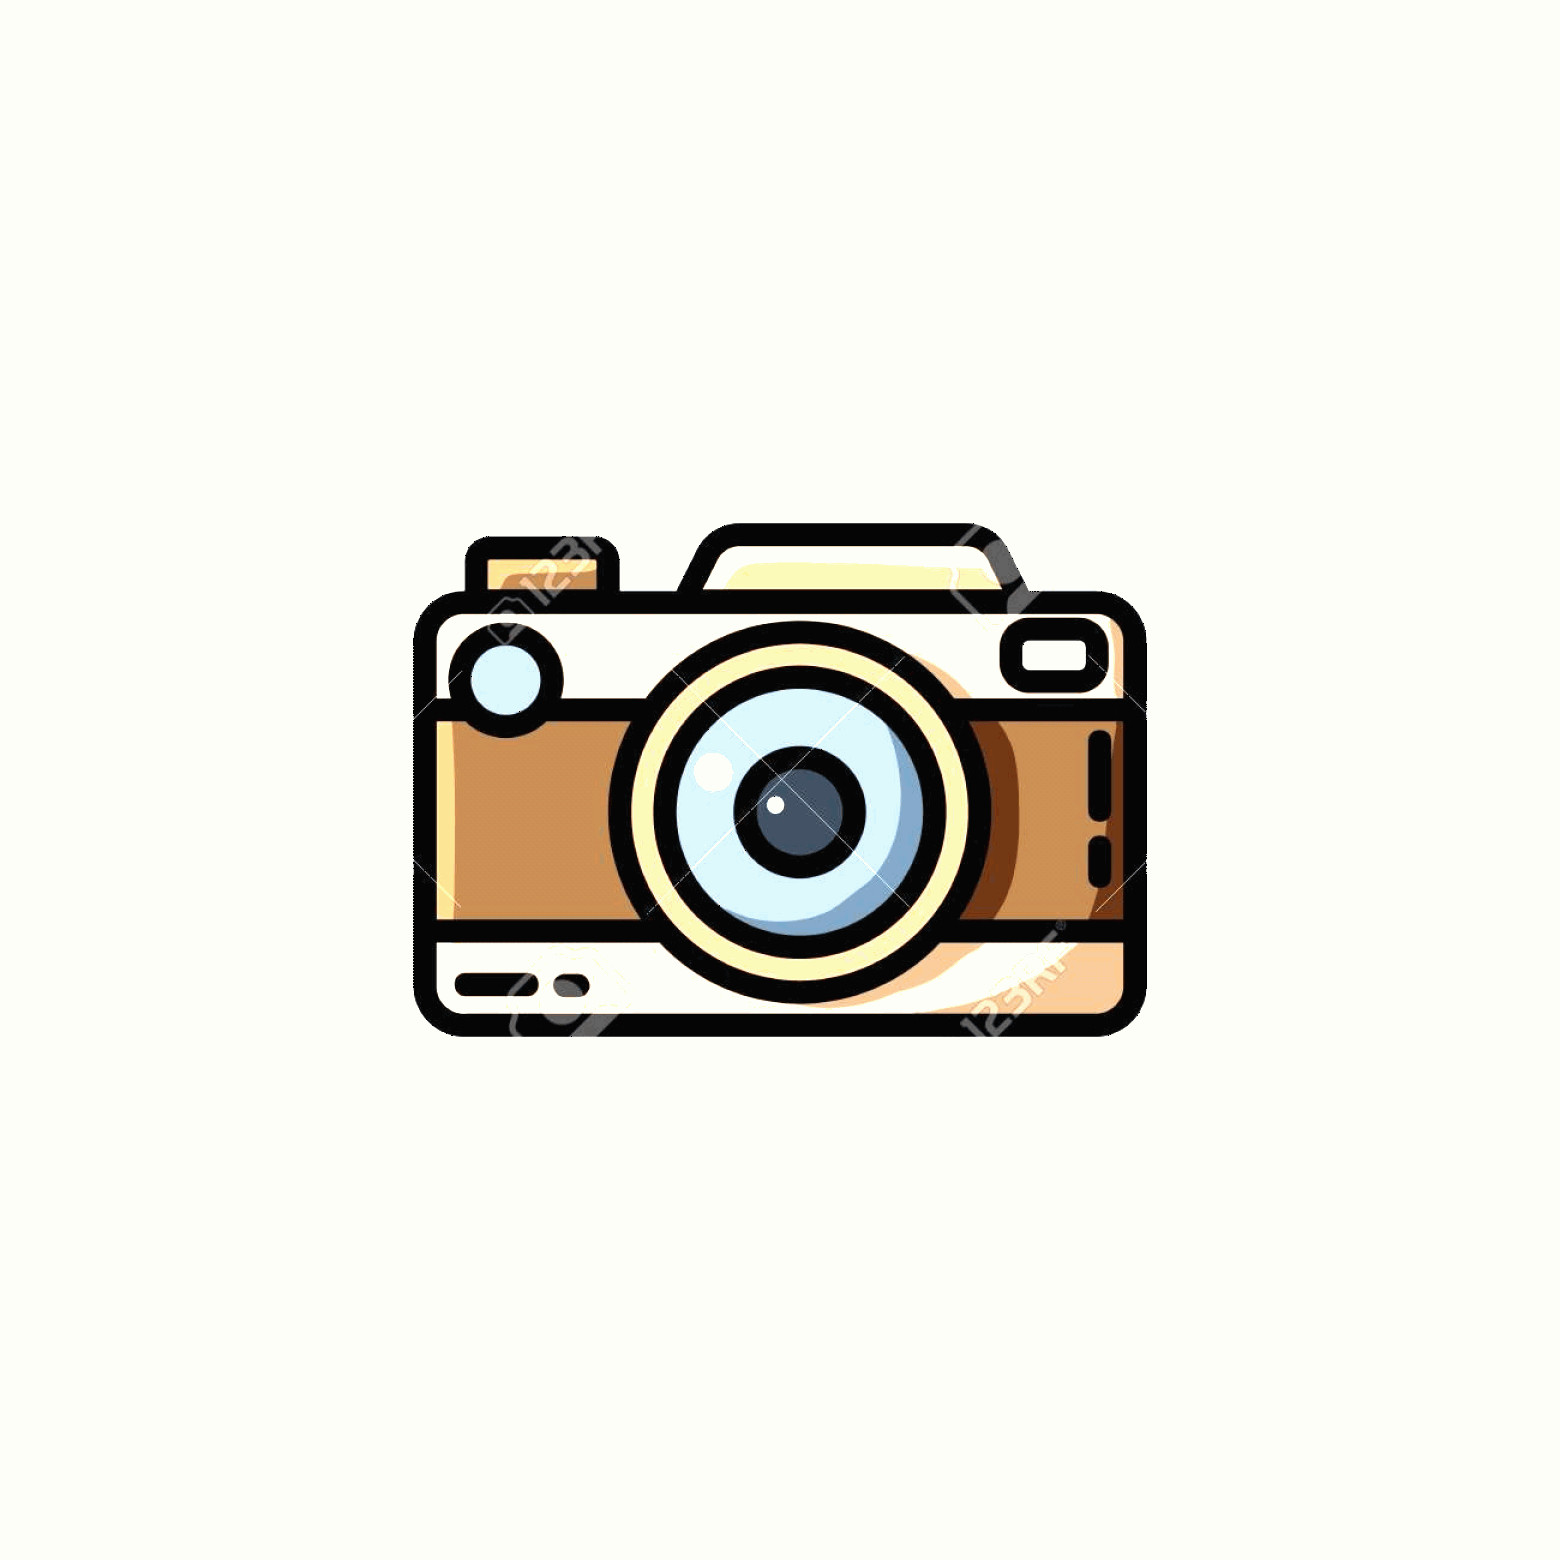 Classic Camera Vector: Photostock Vector Vintage Camera Or Retro Camera Vector Illustration In Flat Style